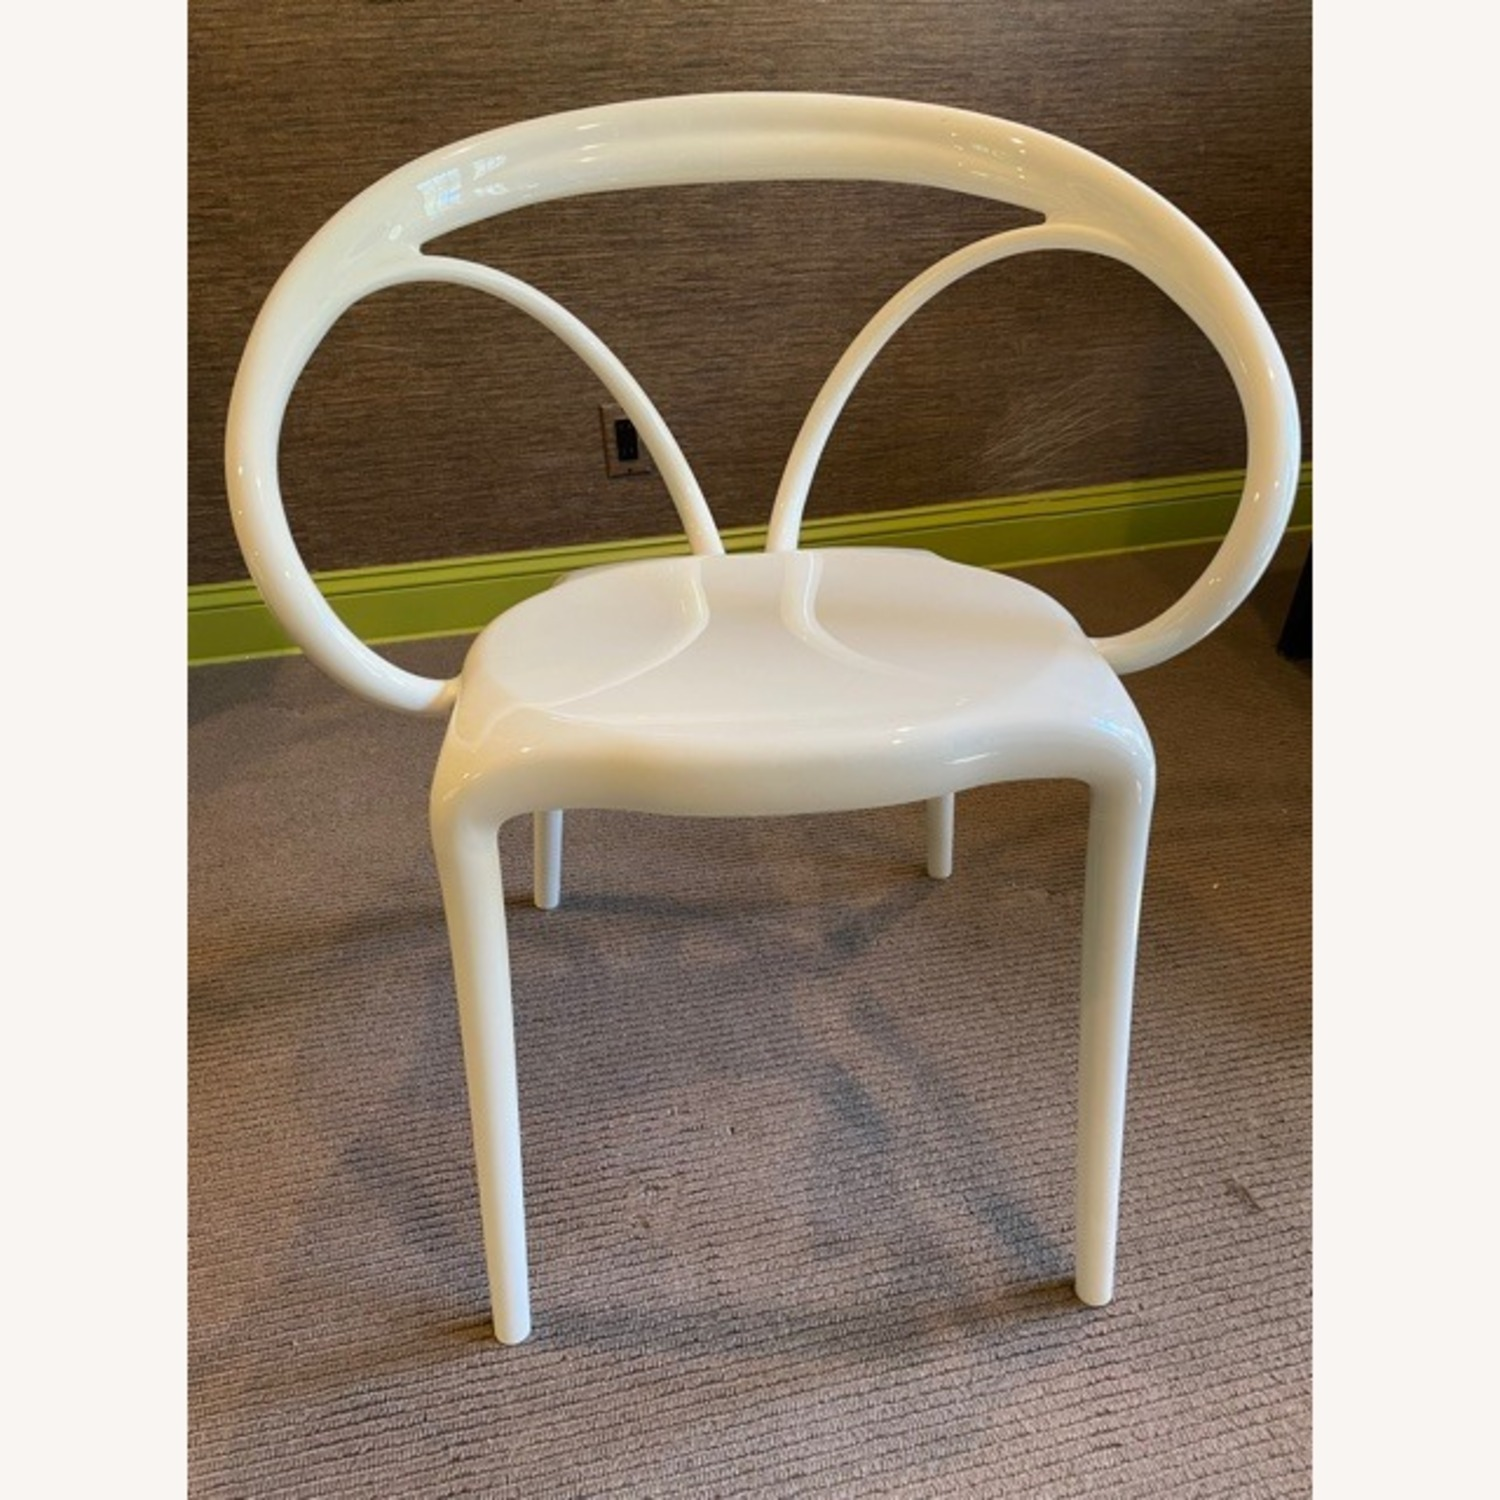 Wayfair Molded White Plastic Accent Chair - image-1